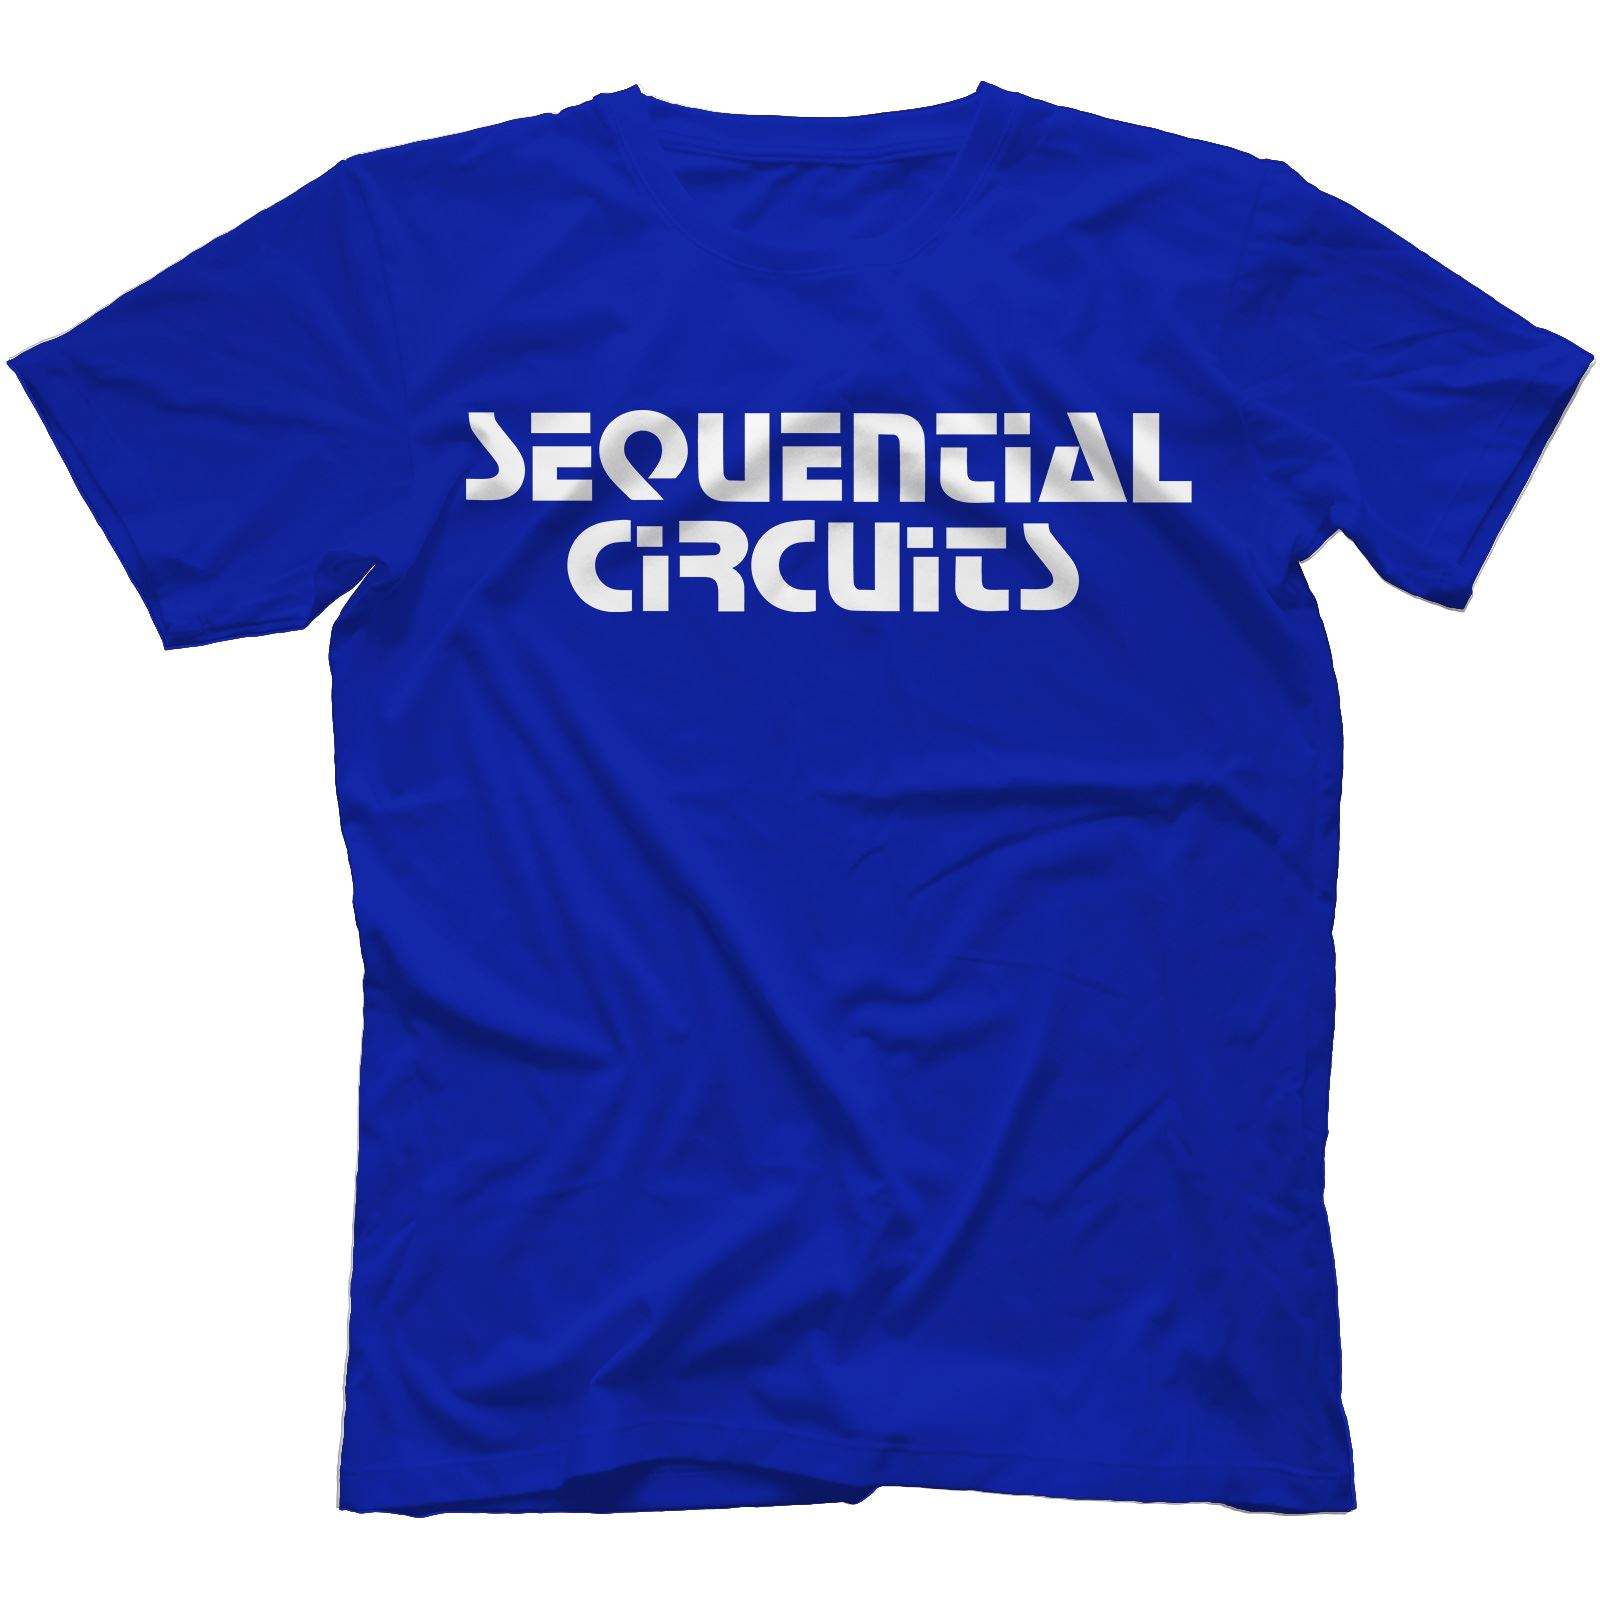 Sequential-Circuits-T-Shirt-100-Cotton-Retro-Synth-Pro-One-Prophet-5-10